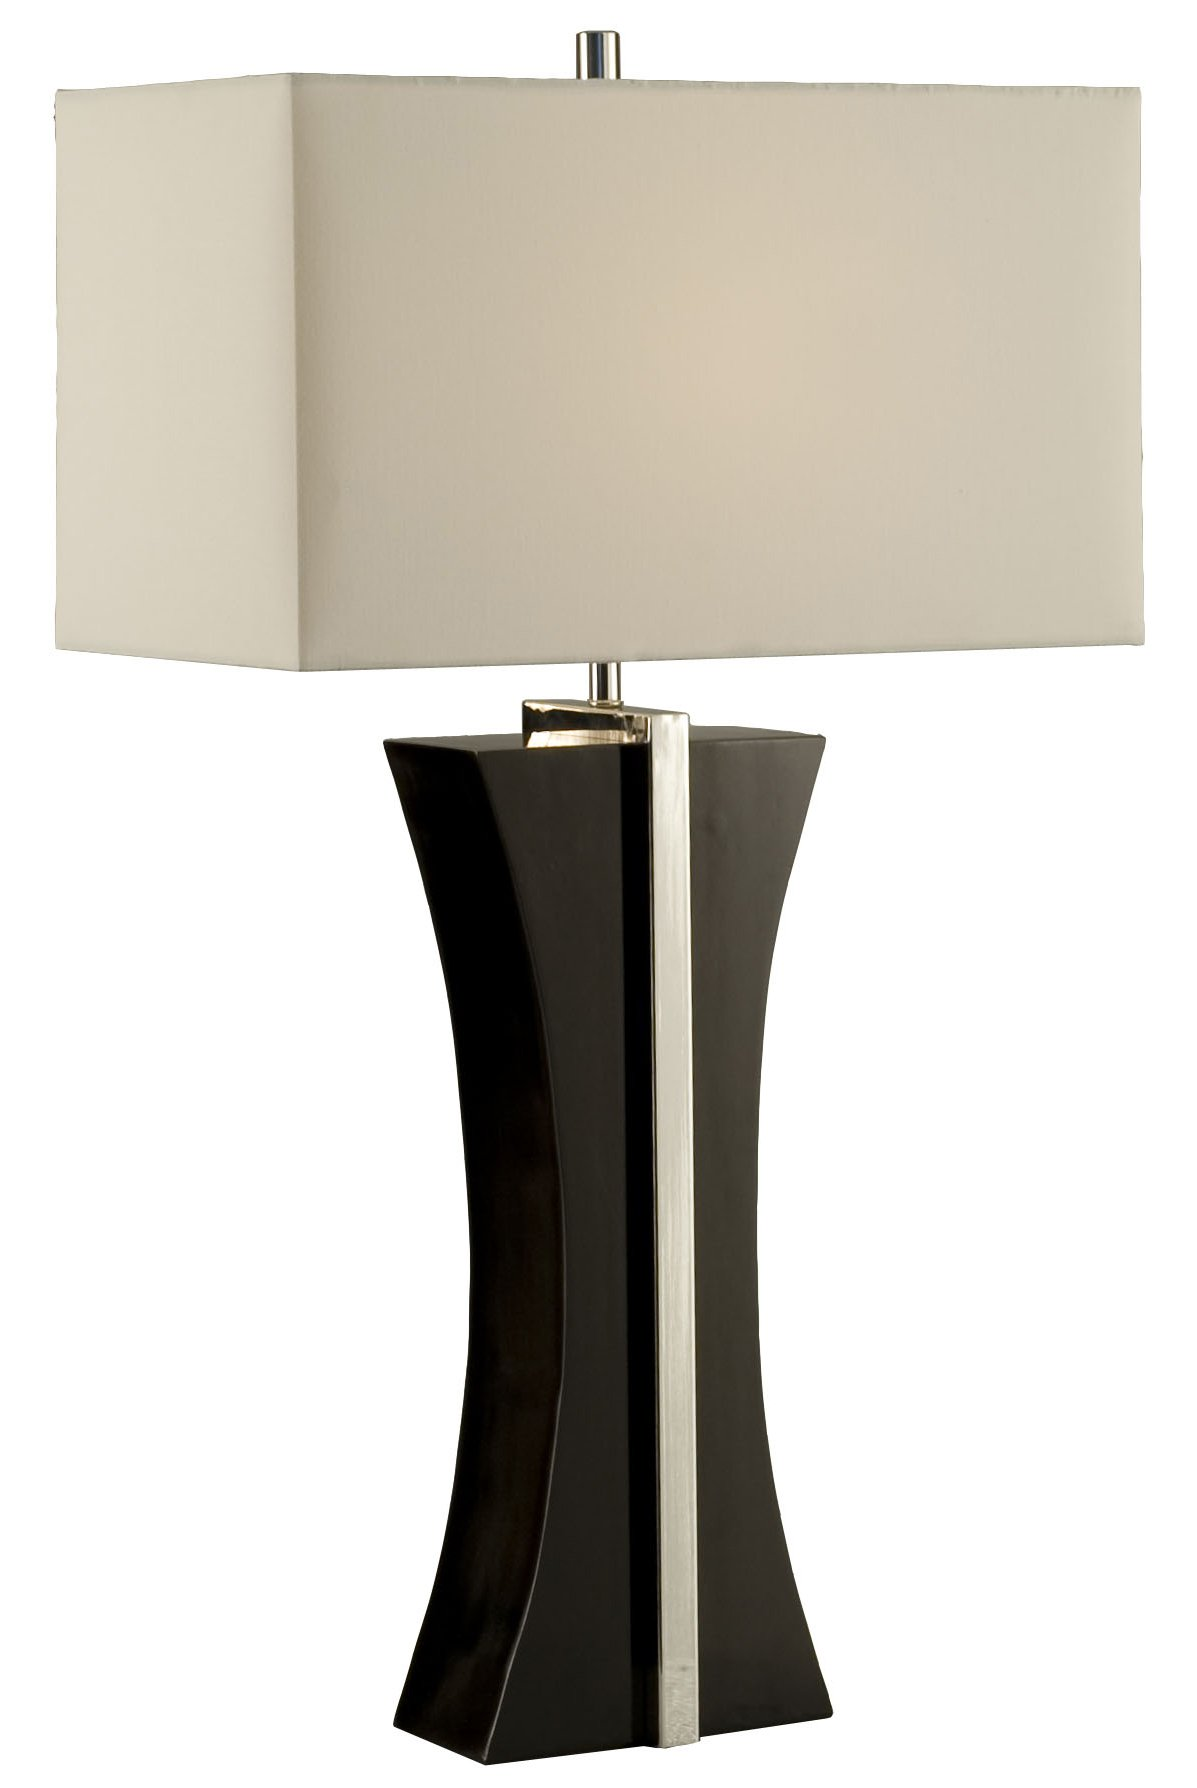 floor lamps lamp light nova arc lighting and black home